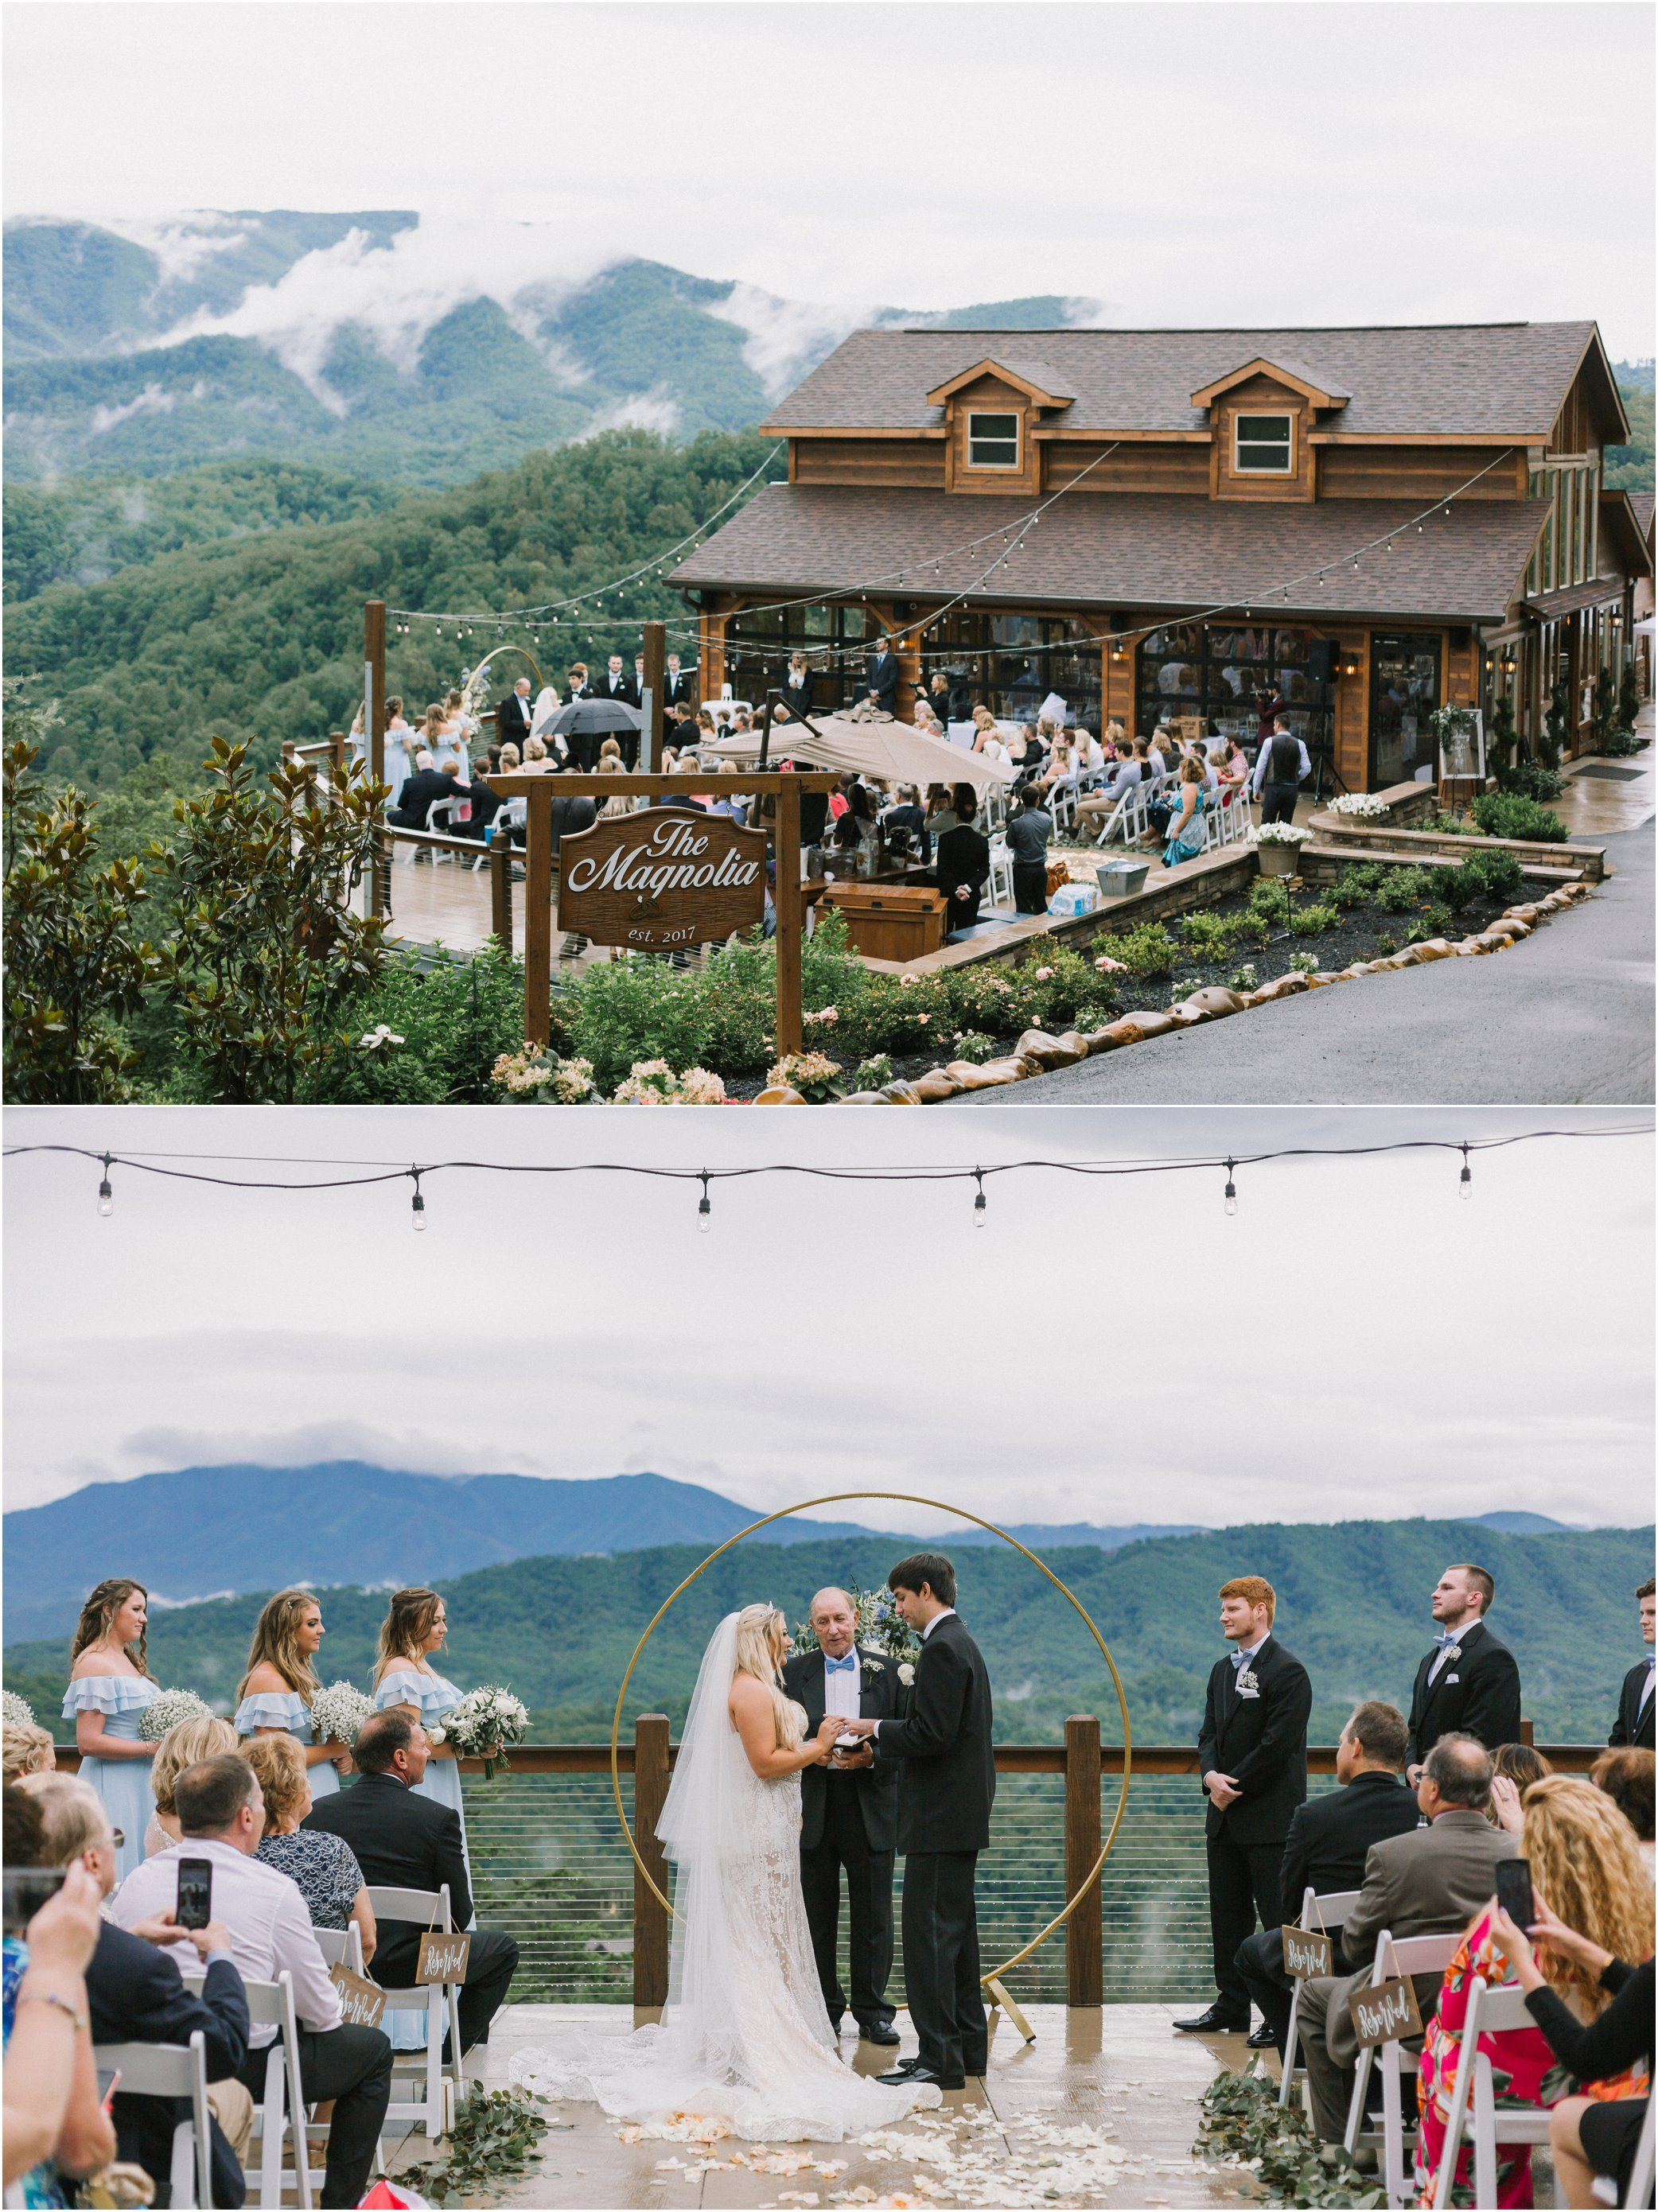 A Wedding At The Magnolia Venue In The Smokies With Views Of The Great Smoky Mountains I Mountain View Weddings Smoky Mountain Wedding Tennessee Wedding Venues